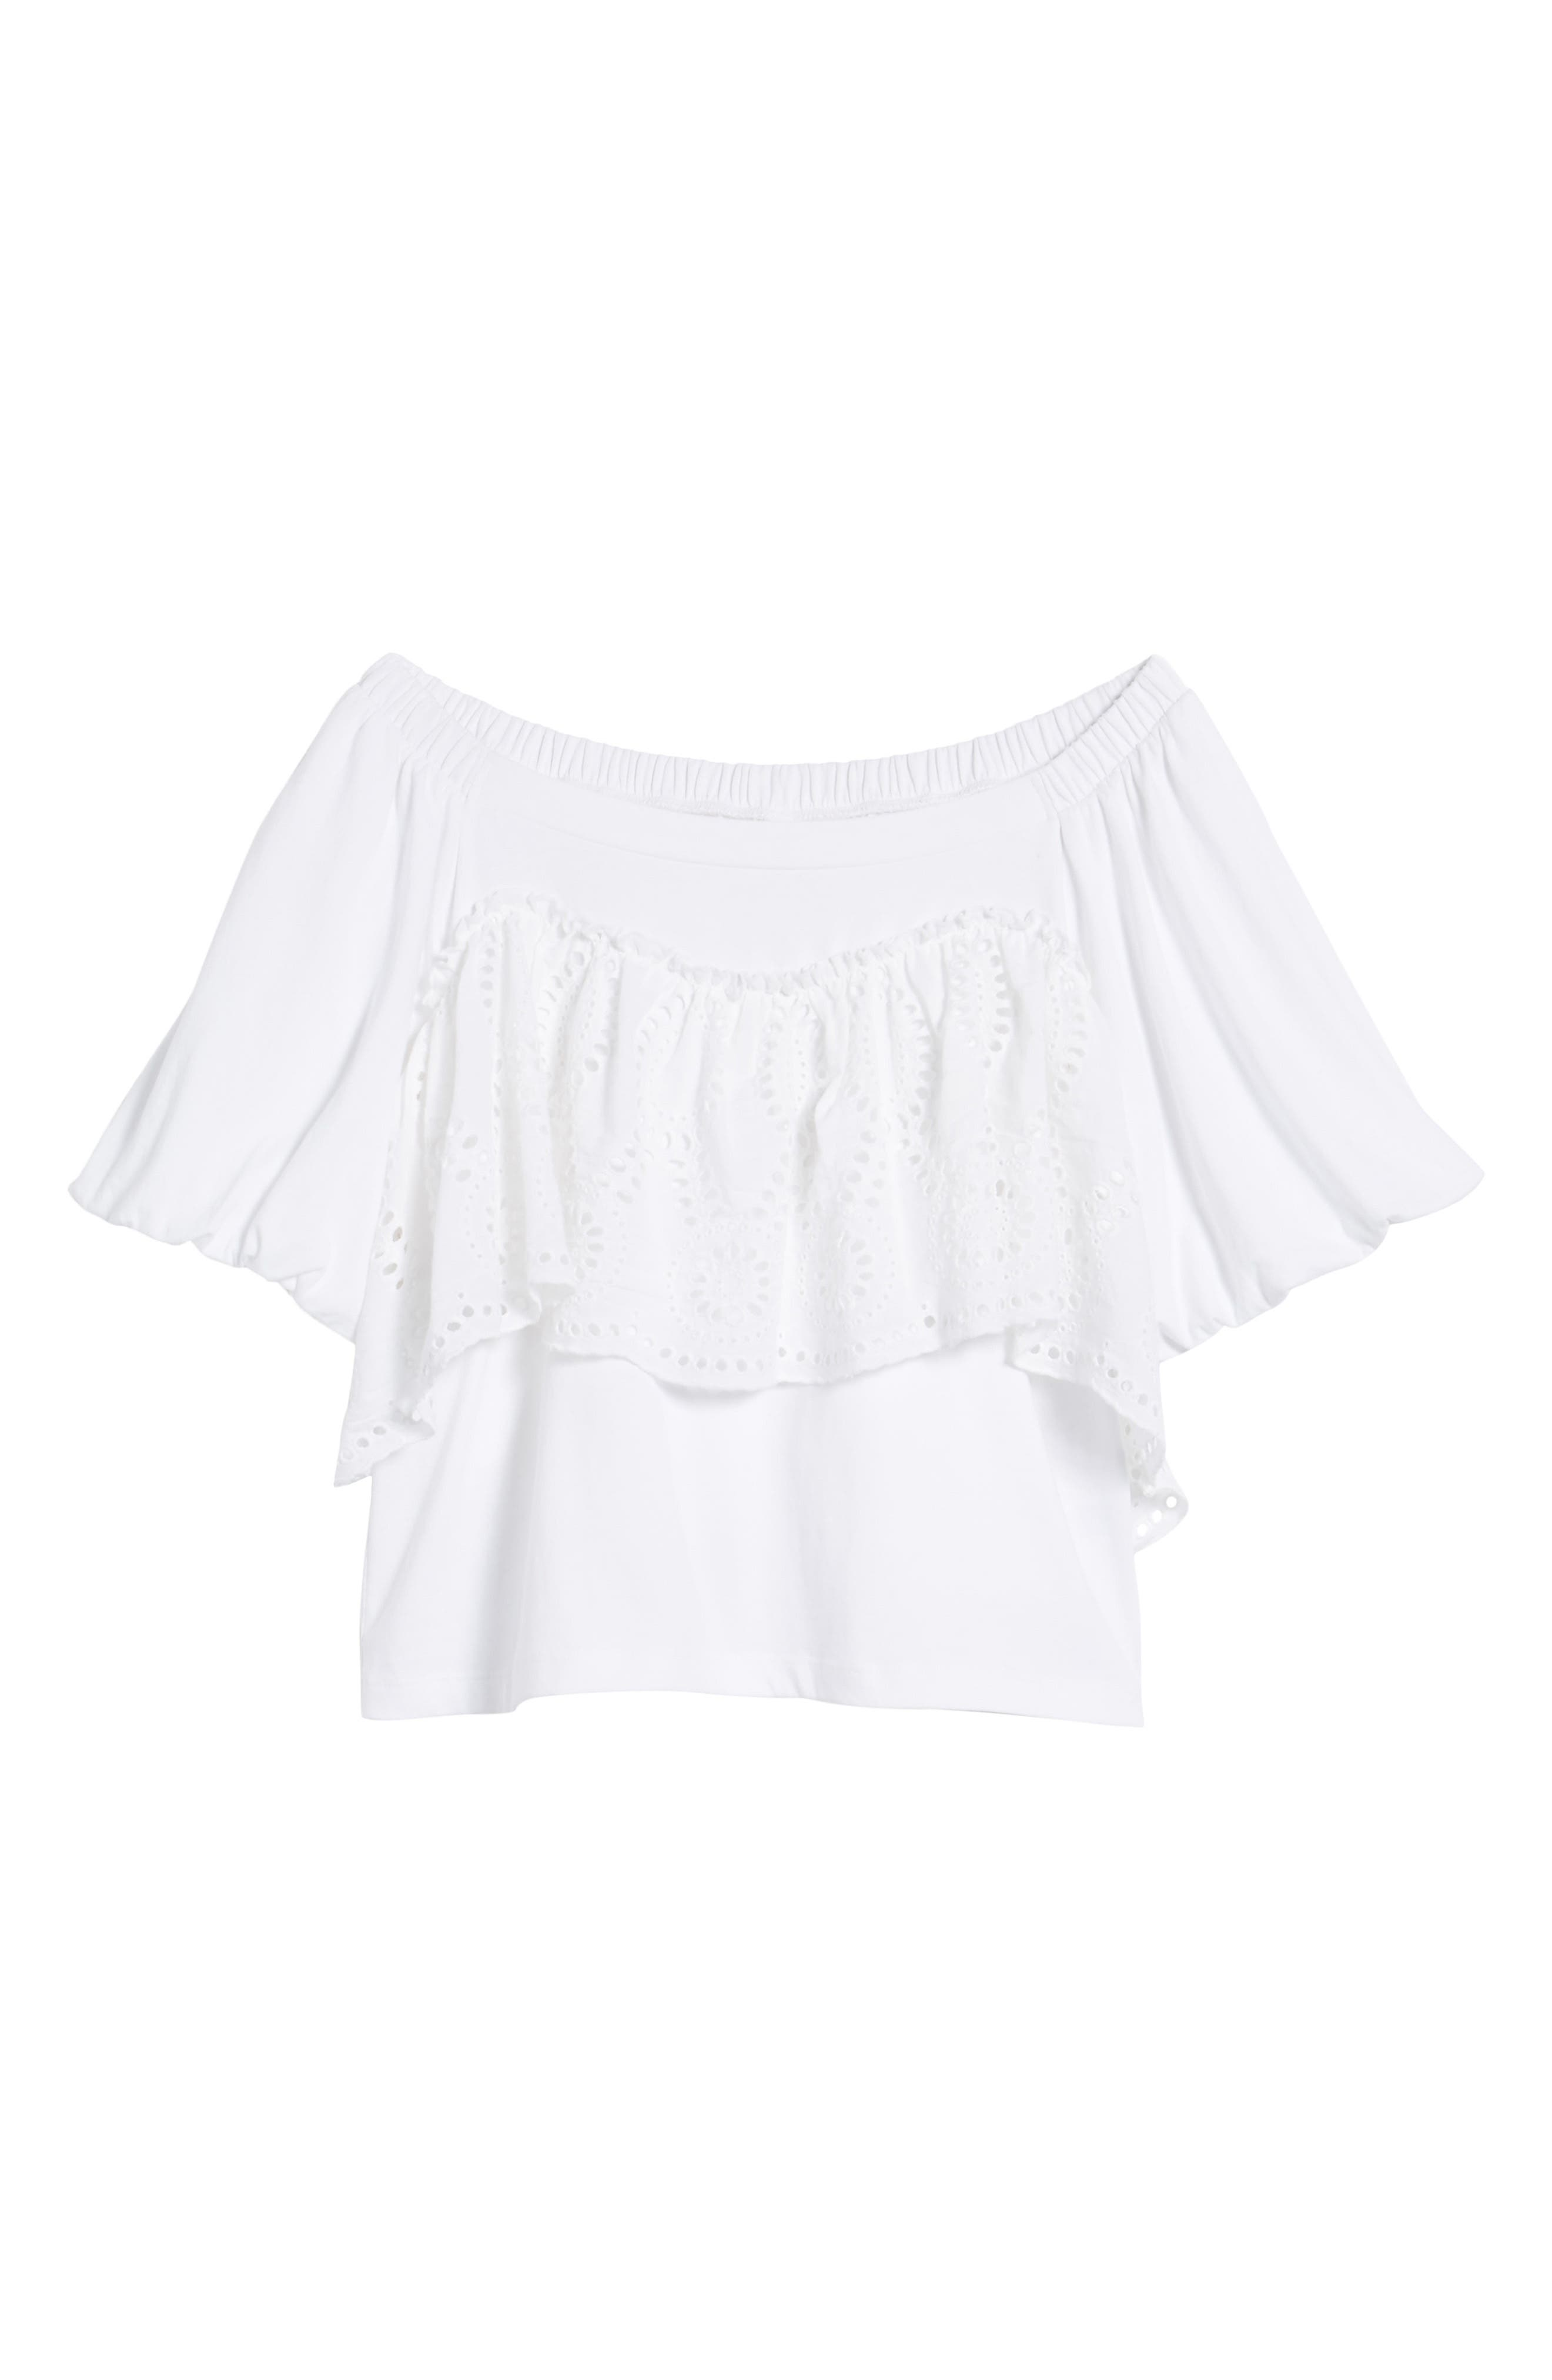 Eyelet Ruffle Off the Shoulder Top,                             Alternate thumbnail 6, color,                             100